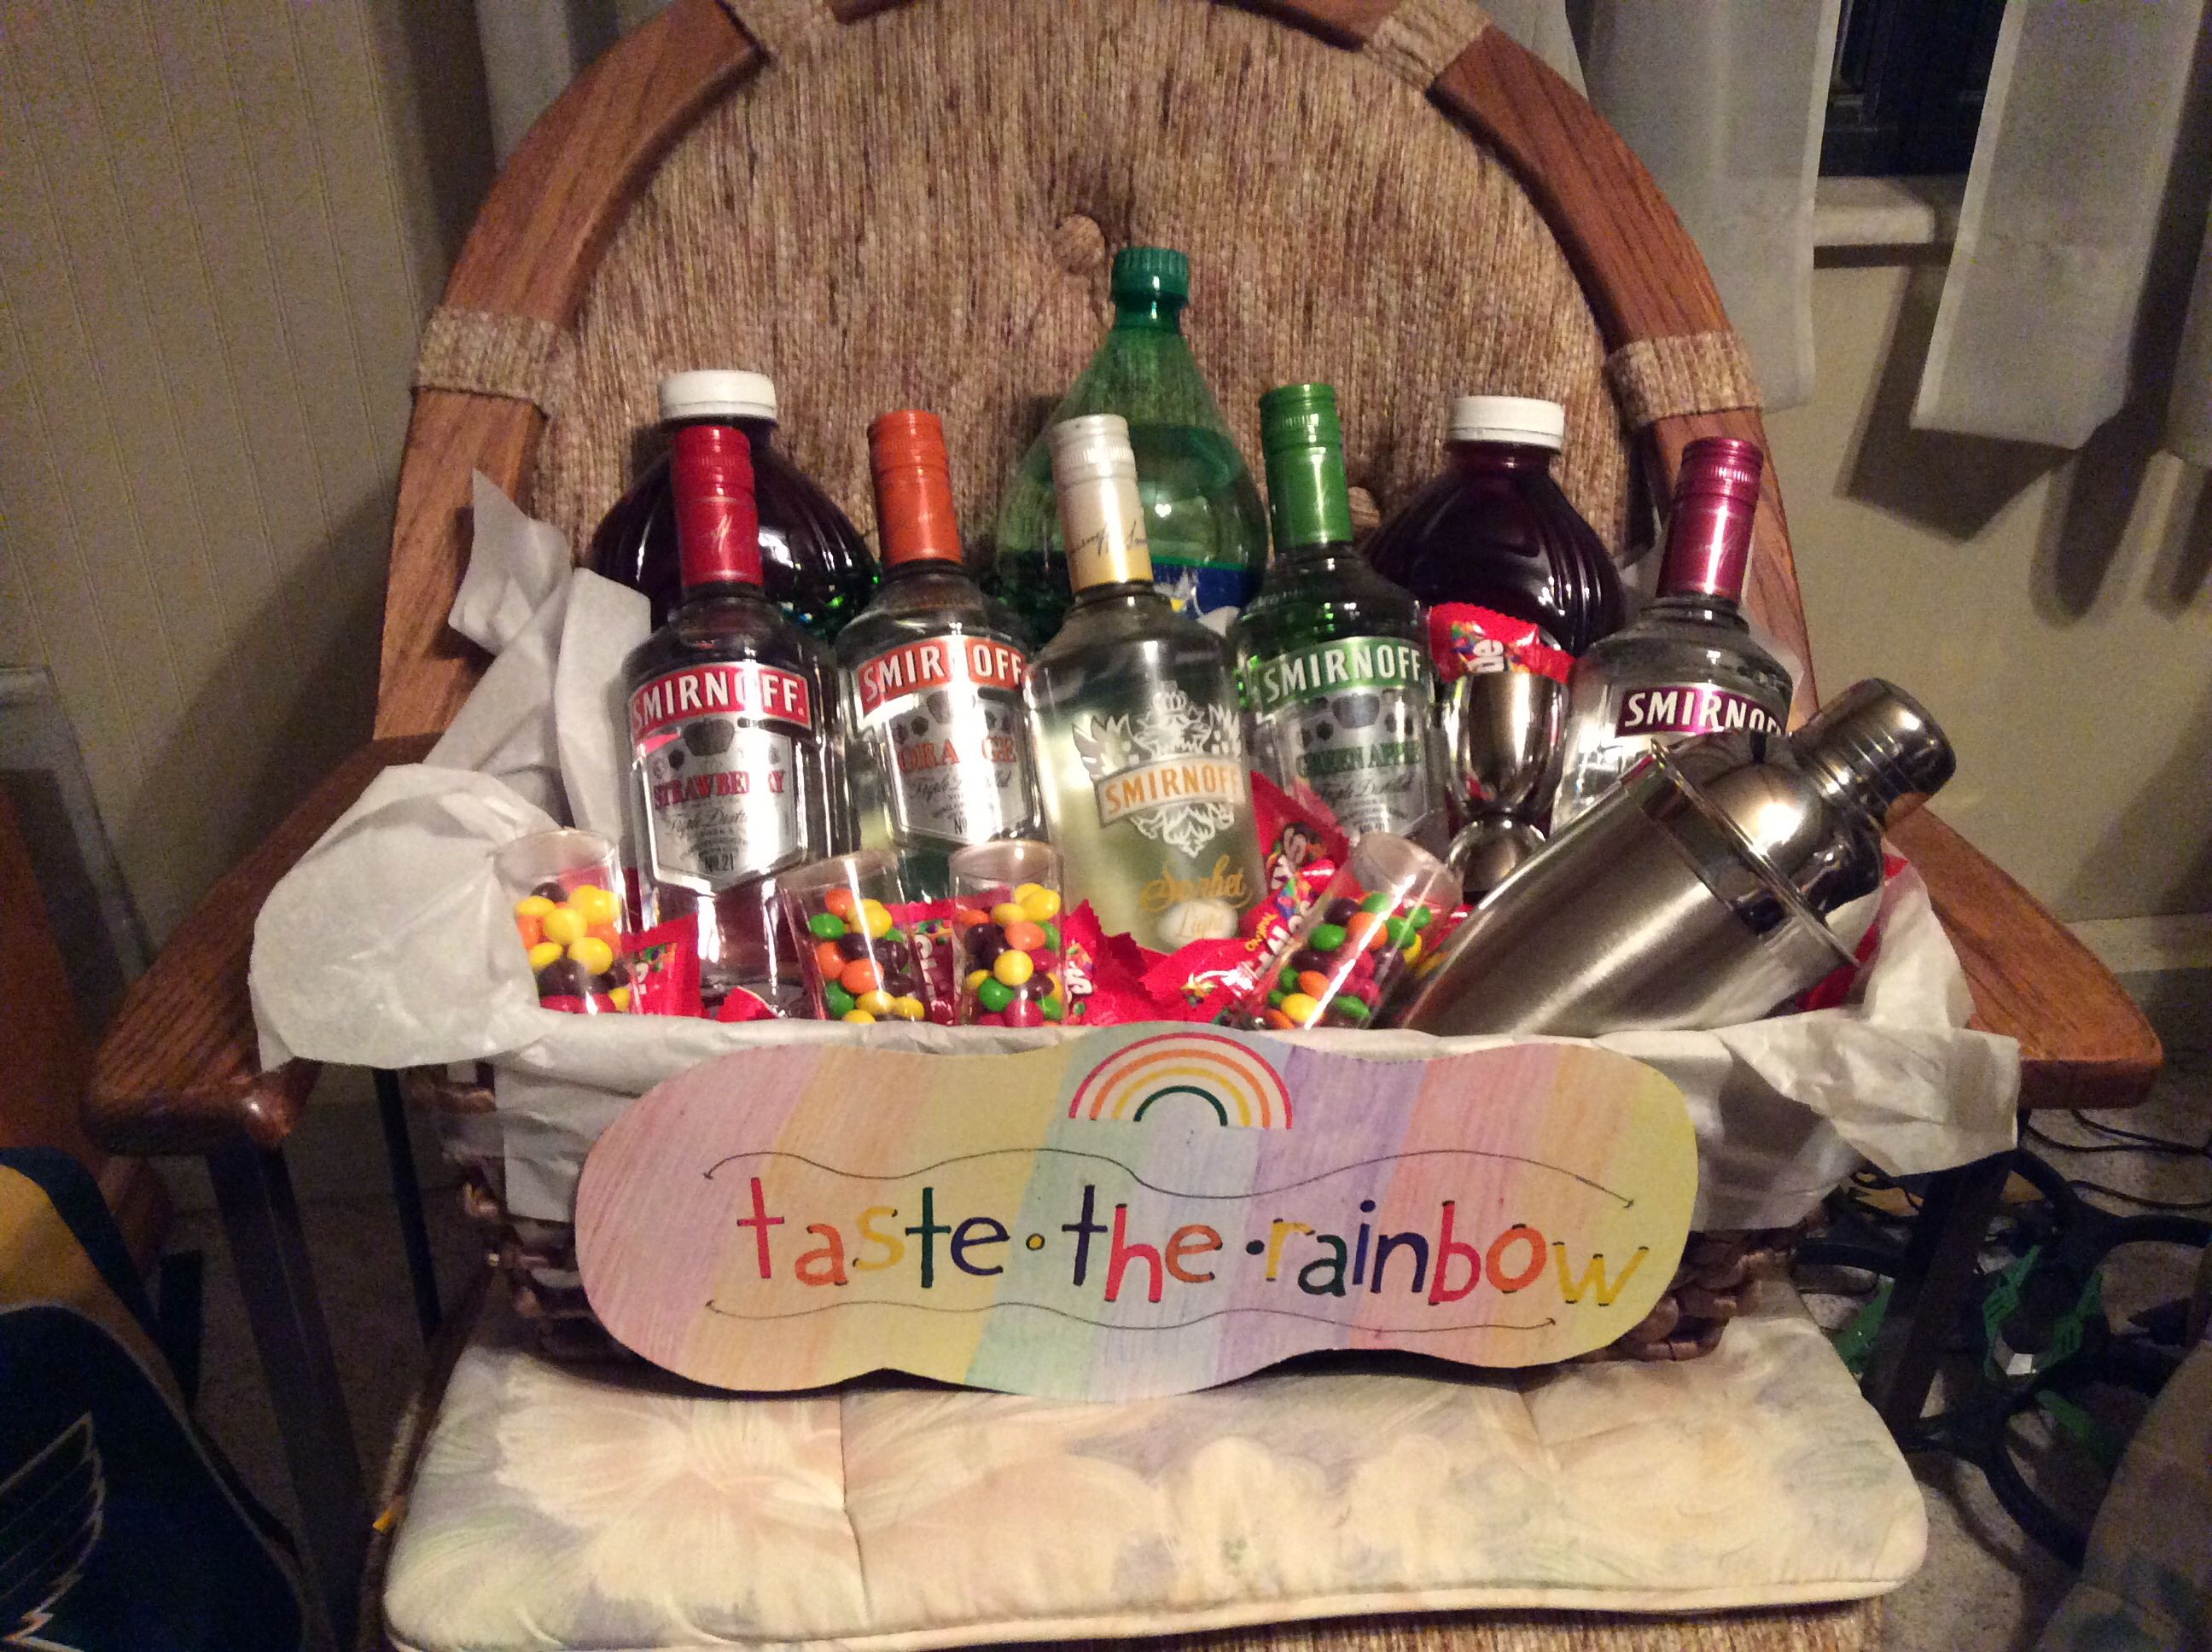 My Very Own Taste The Rainbow Basket Fundraiser Baskets Raffle Baskets Auction Basket